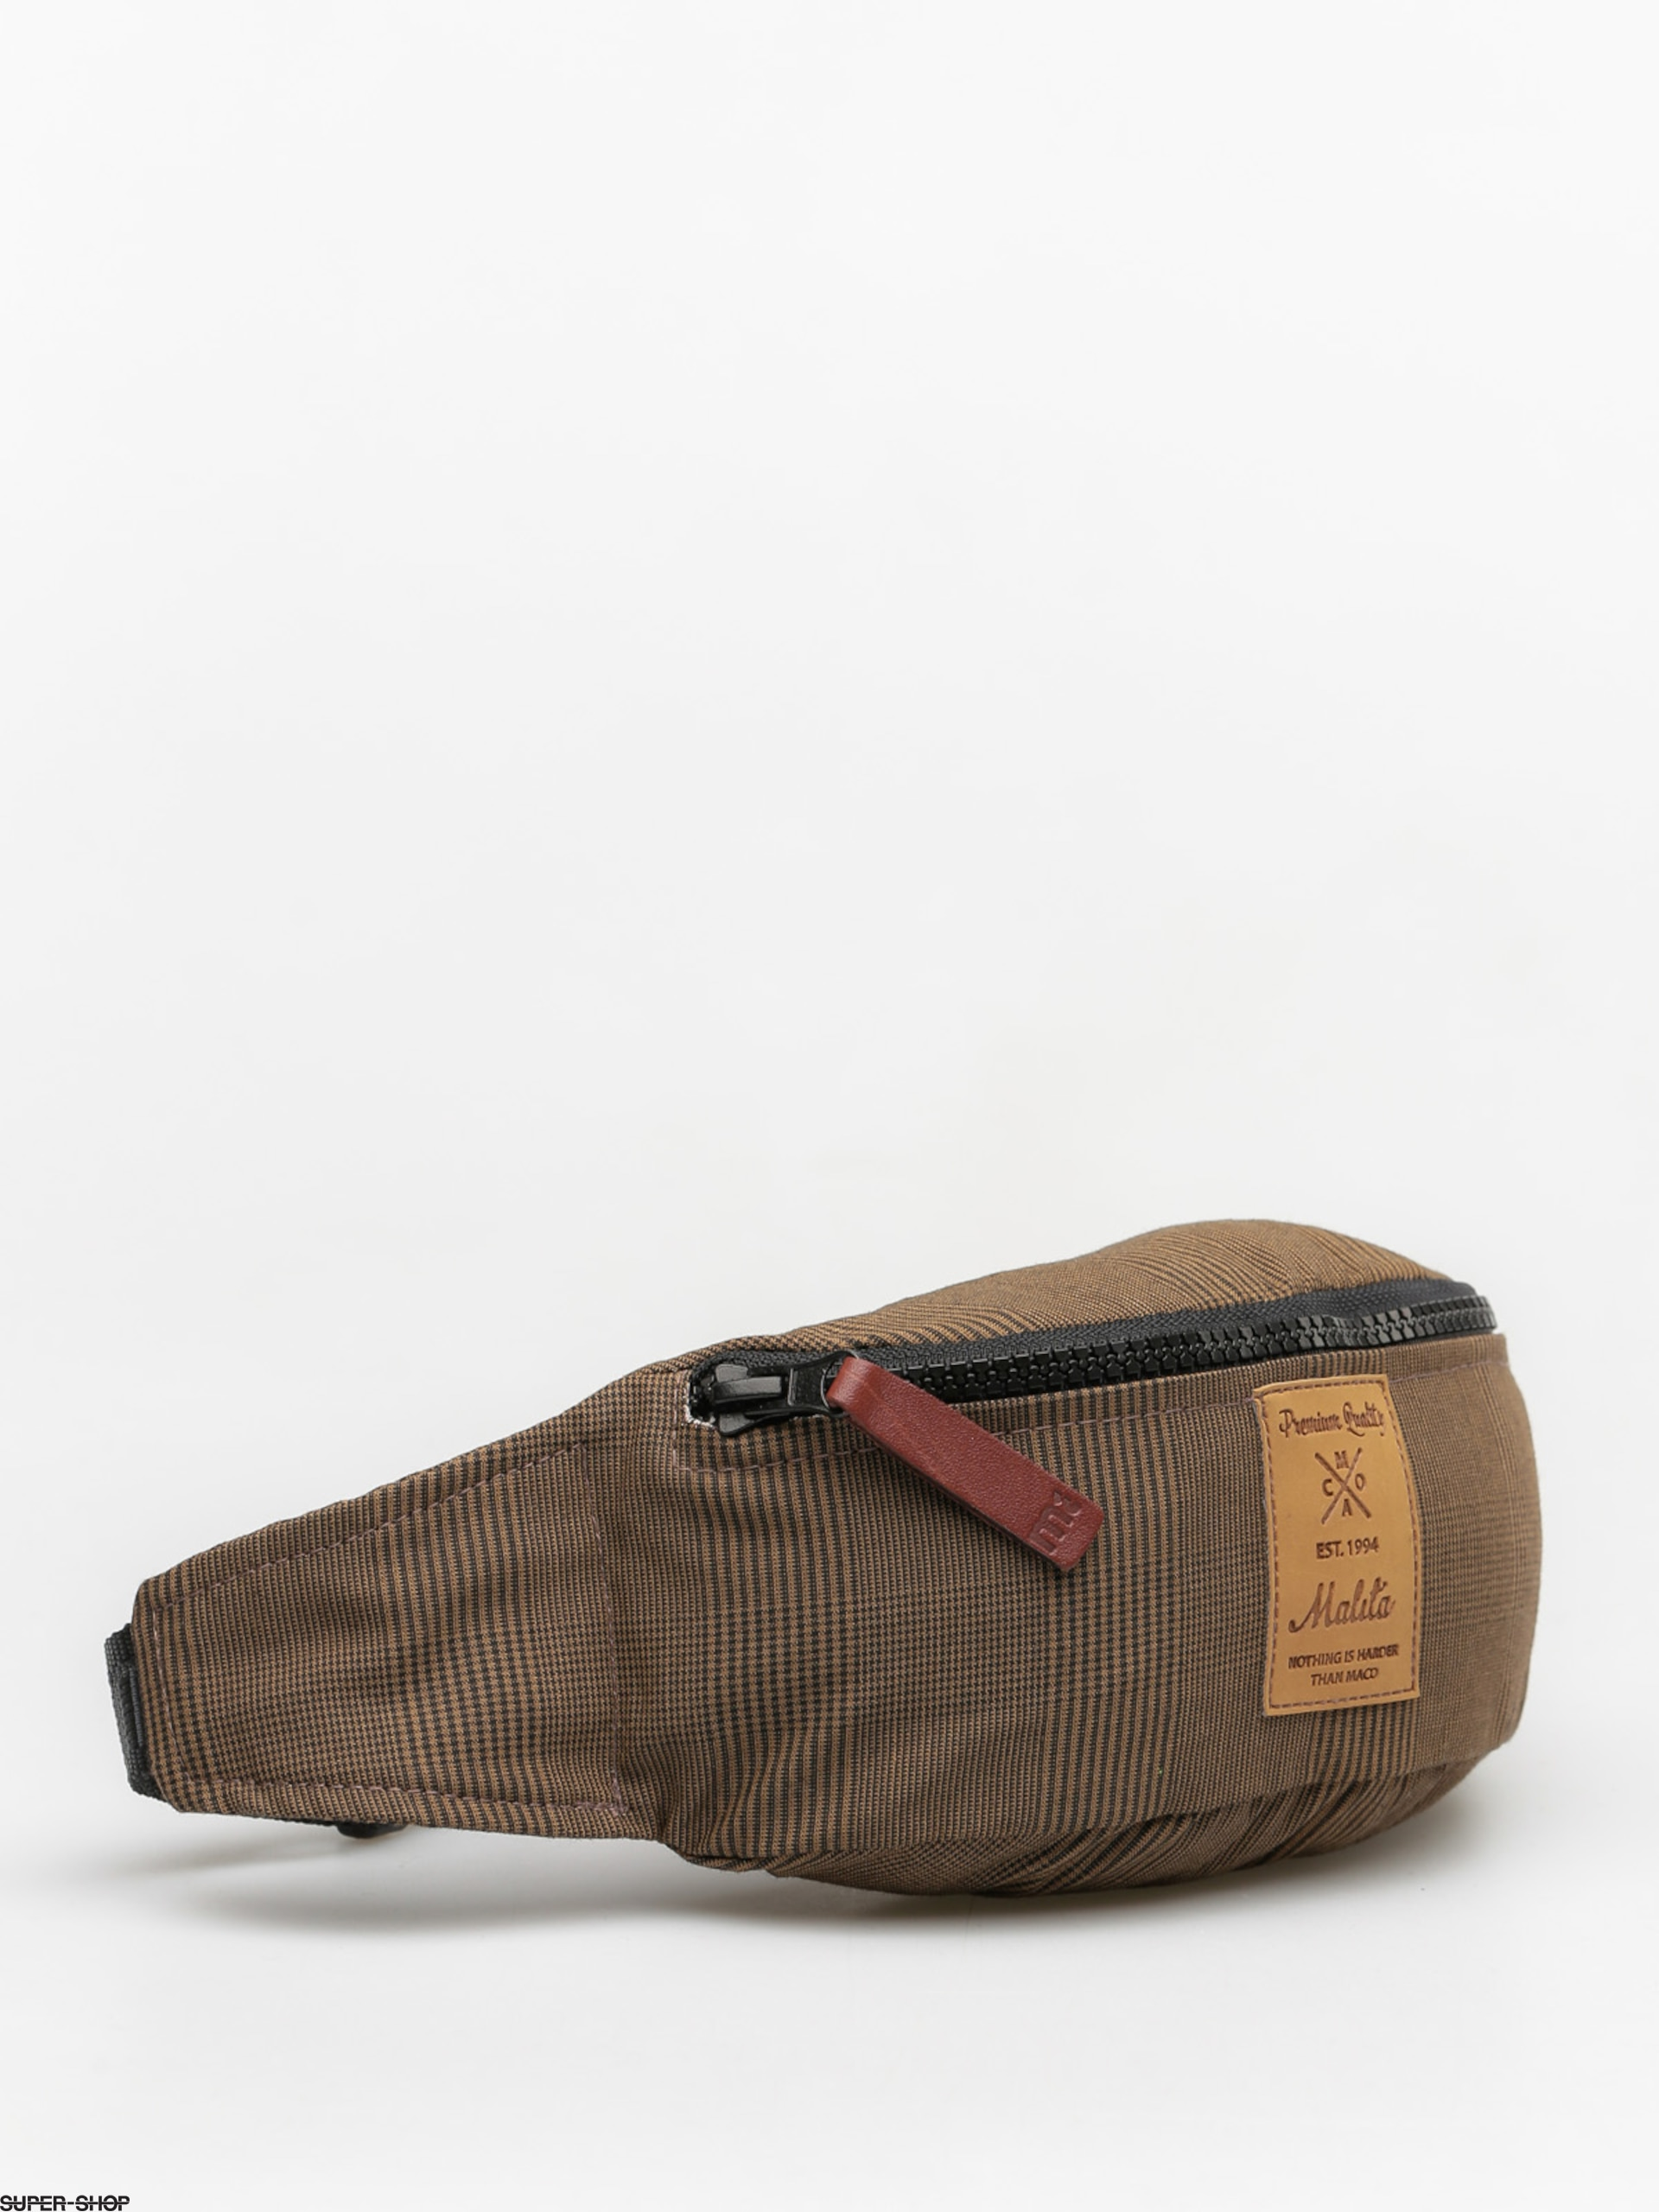 Malita Bum bag Checked (brown/brown label)